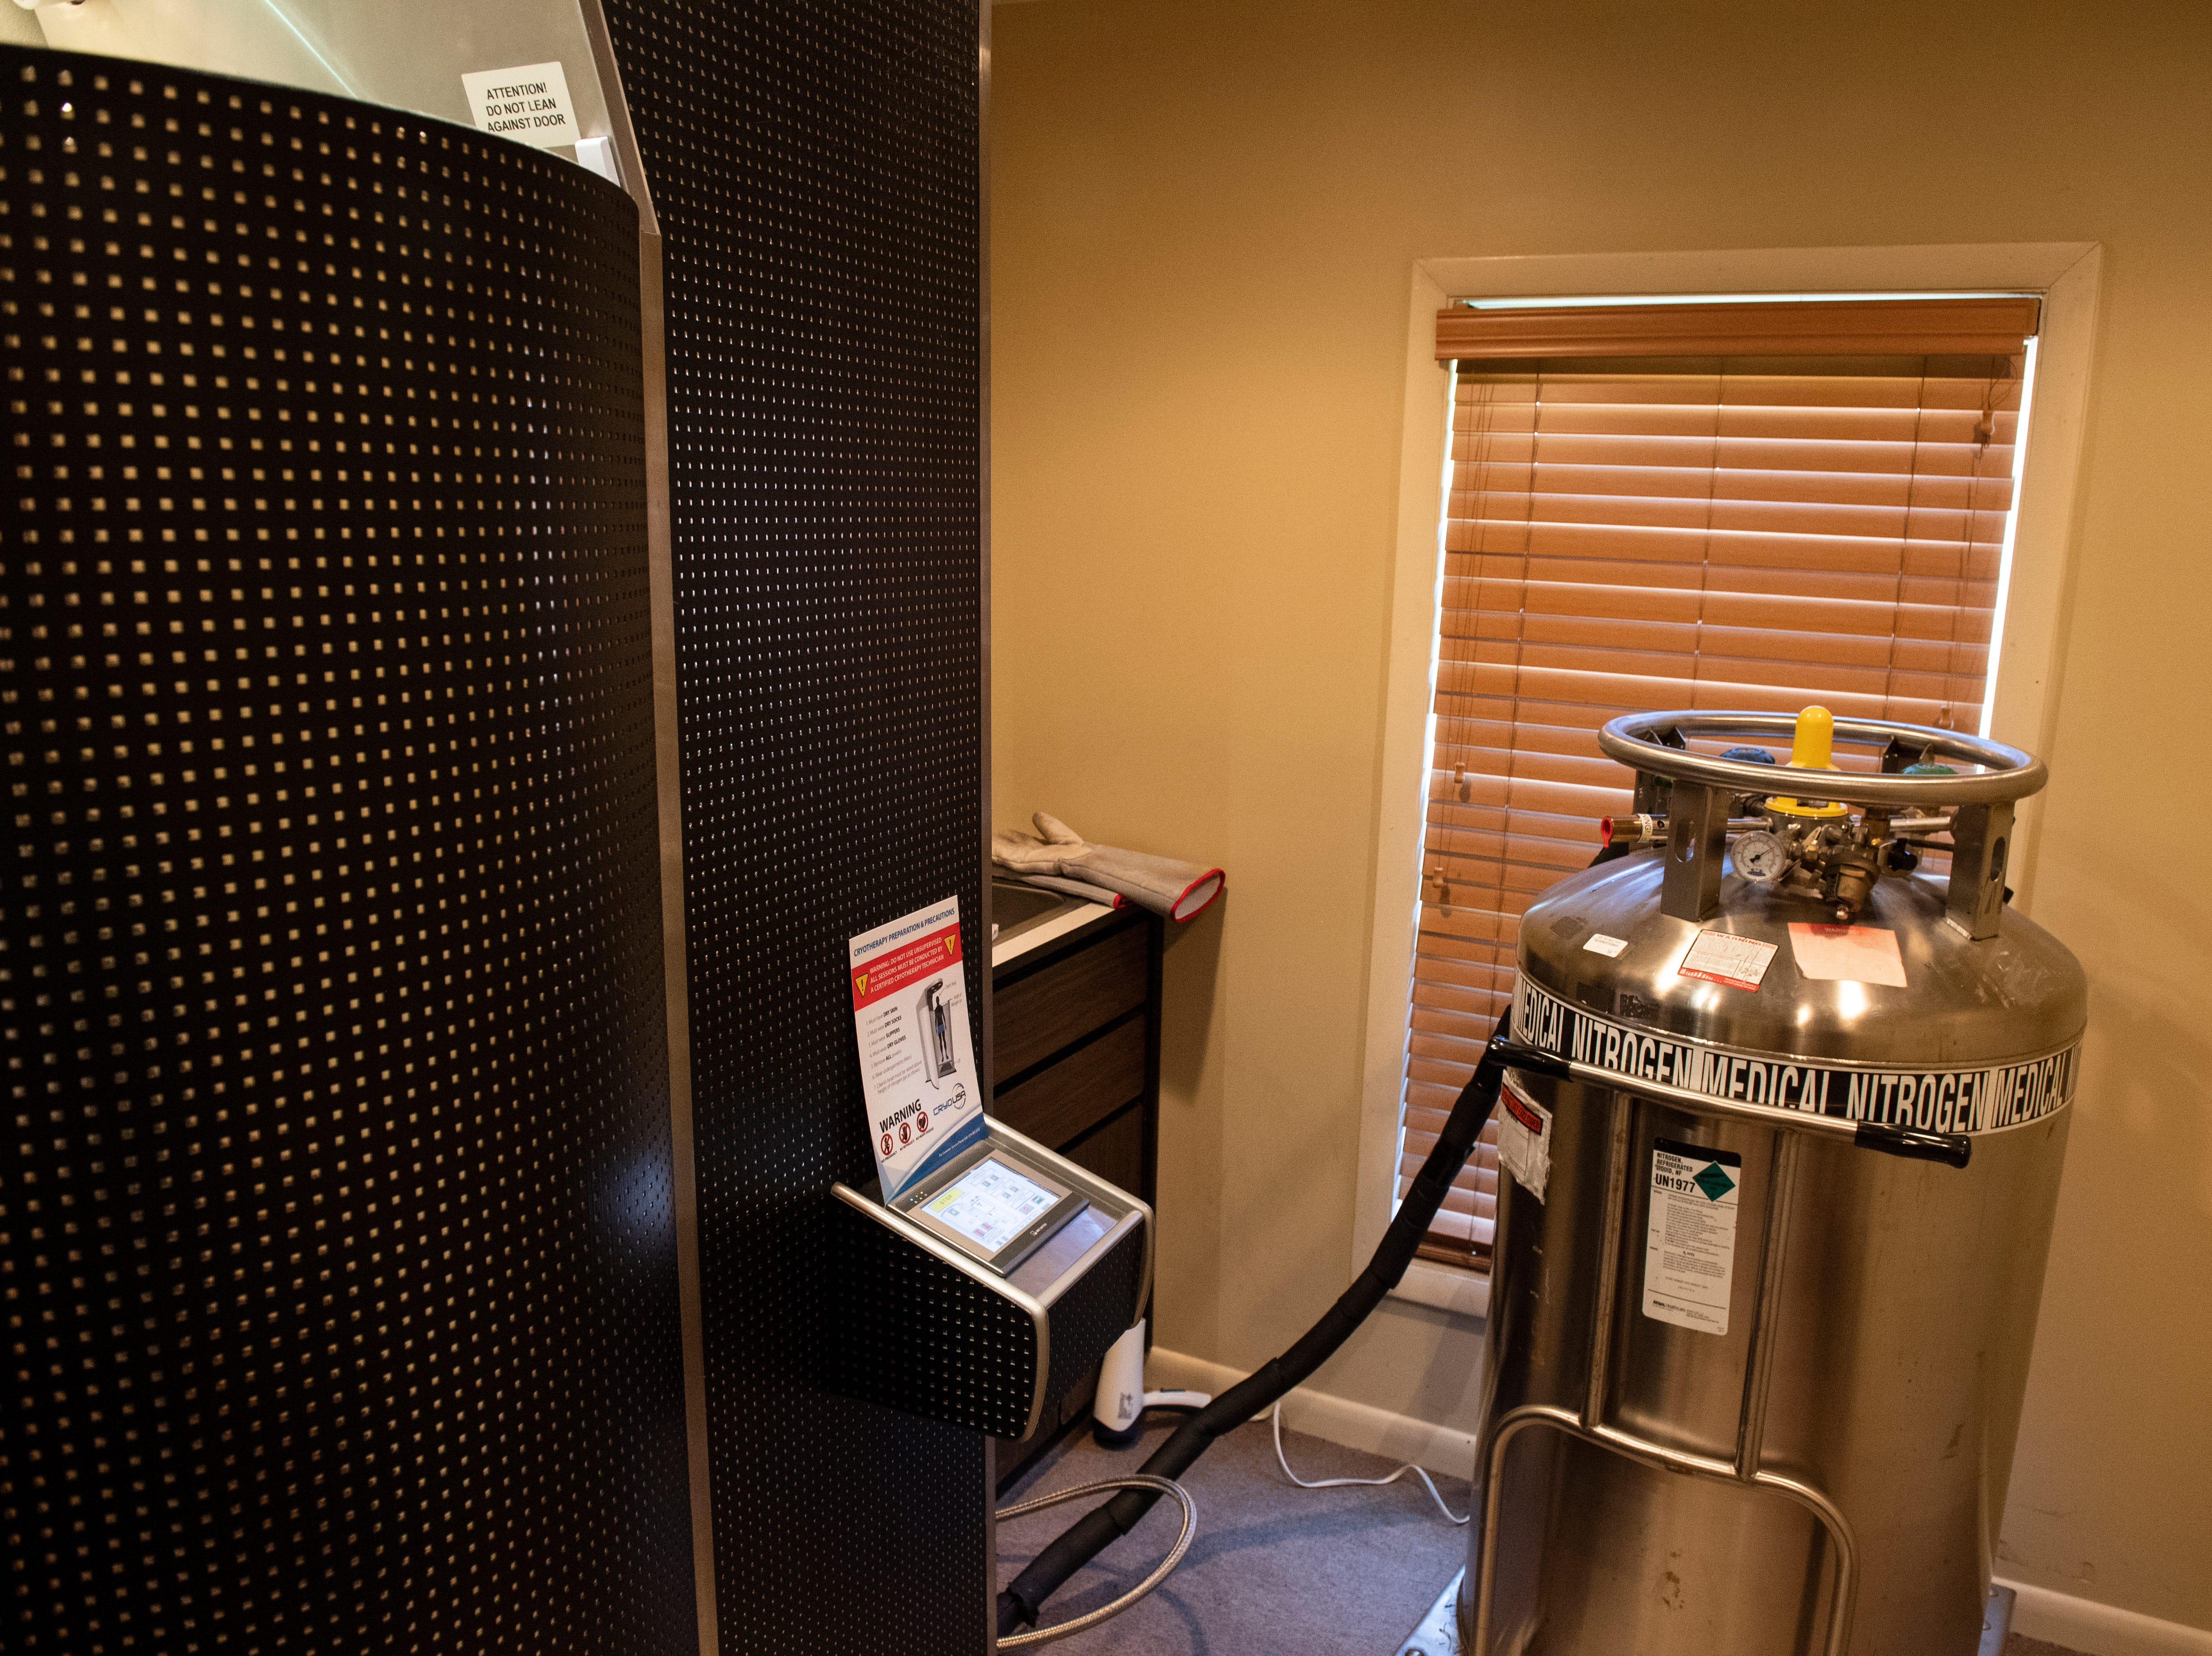 The York Medical Spa uses medical grade nitrogen gas in their cryotherapy chamber, Tuesday, Aug. 27, 2018. Cryotherapy is a treatment using liquid nitrogen gas in an enclosed chamber to surround a patientÕs body with freezing temperatures.